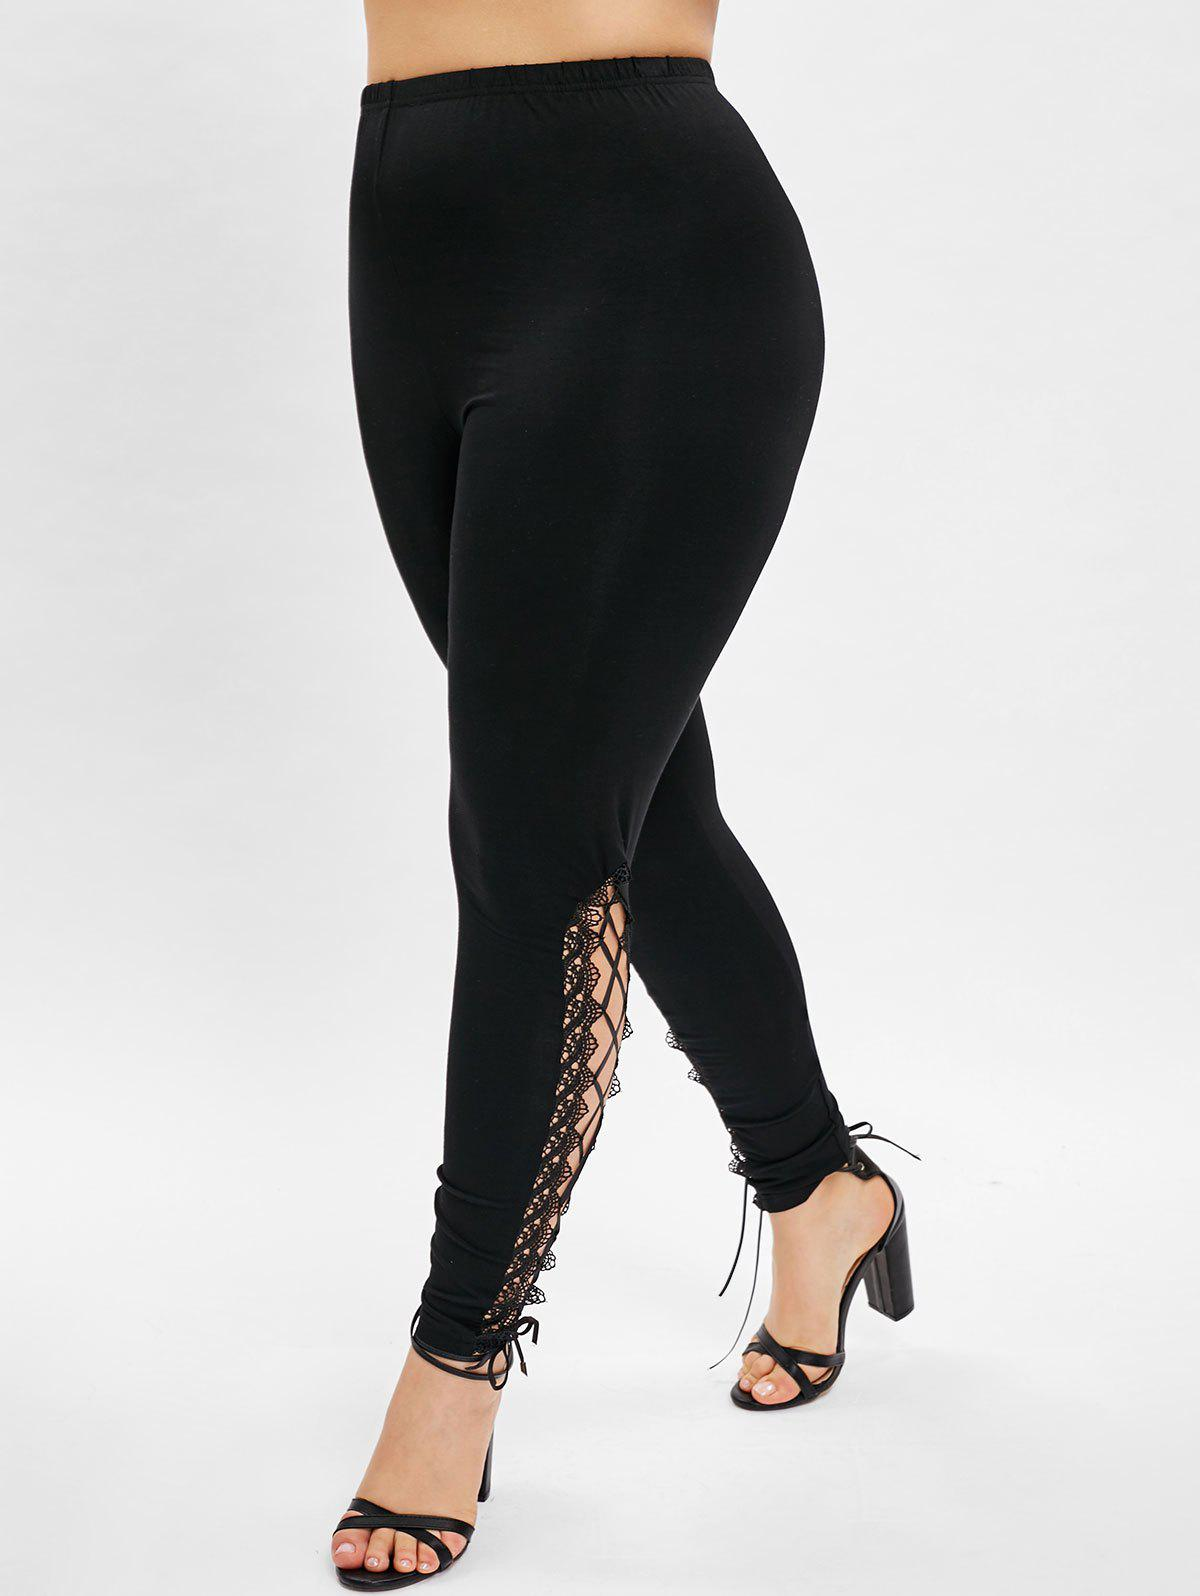 ea5638fca30f6b 80% OFF] Plus Size Lace Panel Side Lace Up Leggings | Rosegal